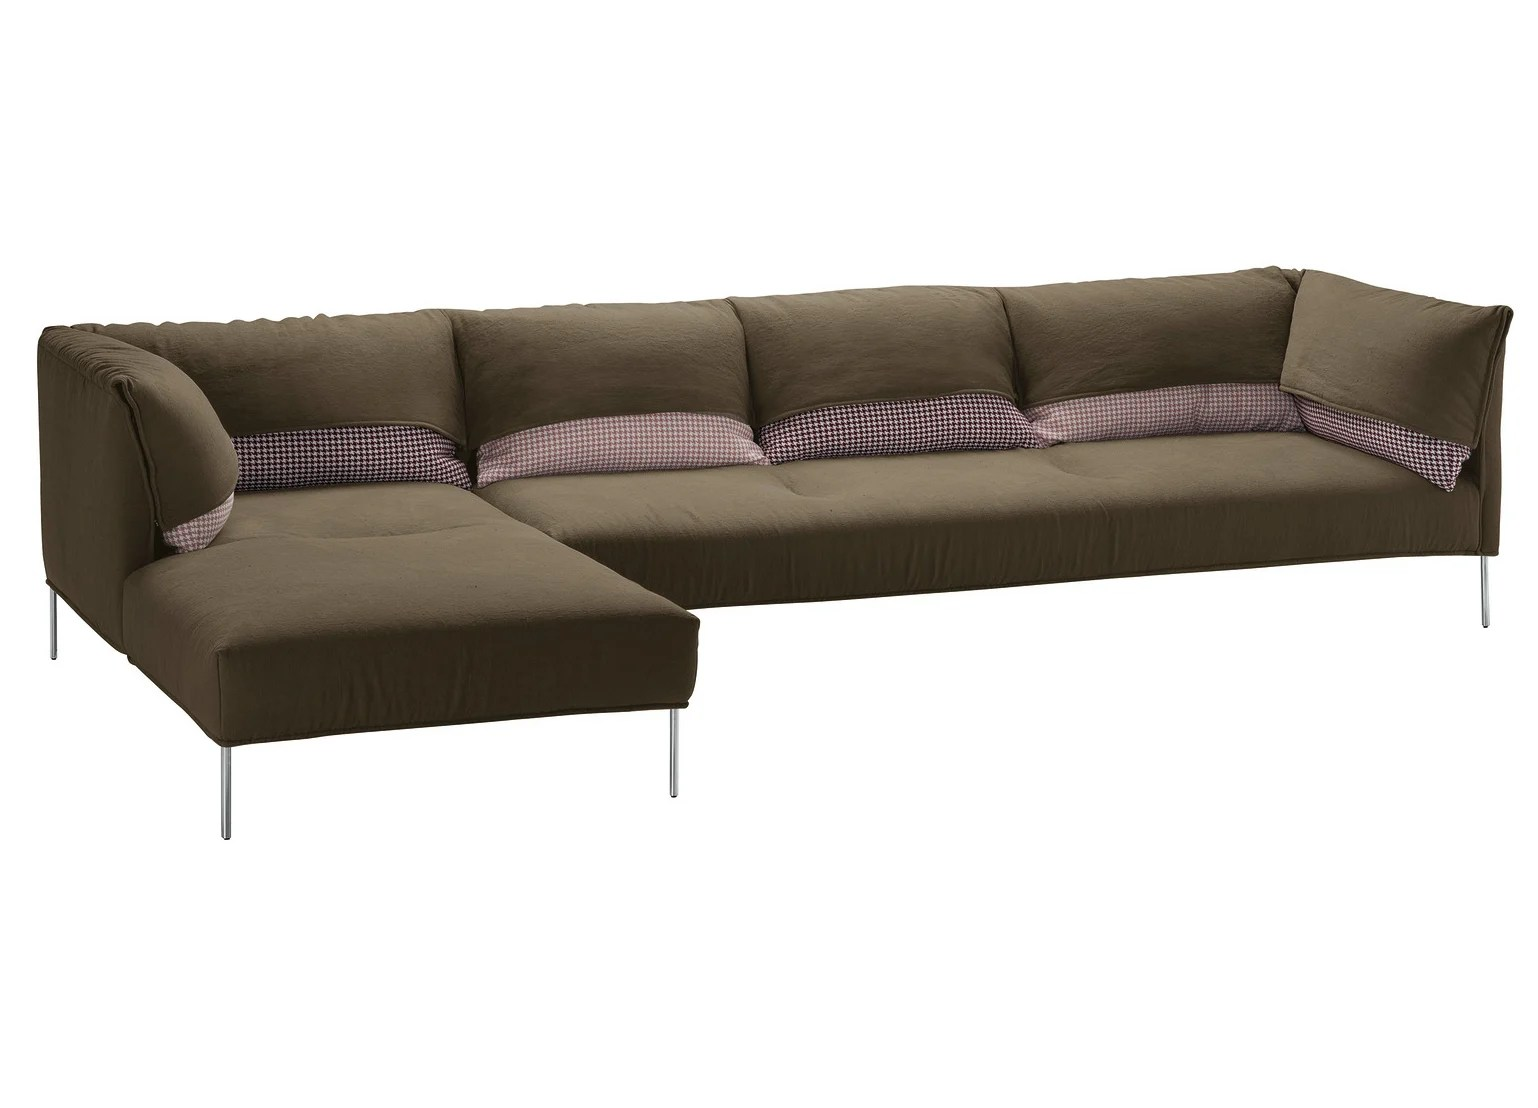 removable cover sofa second hand sets in mumbai with undercover by zanotta design